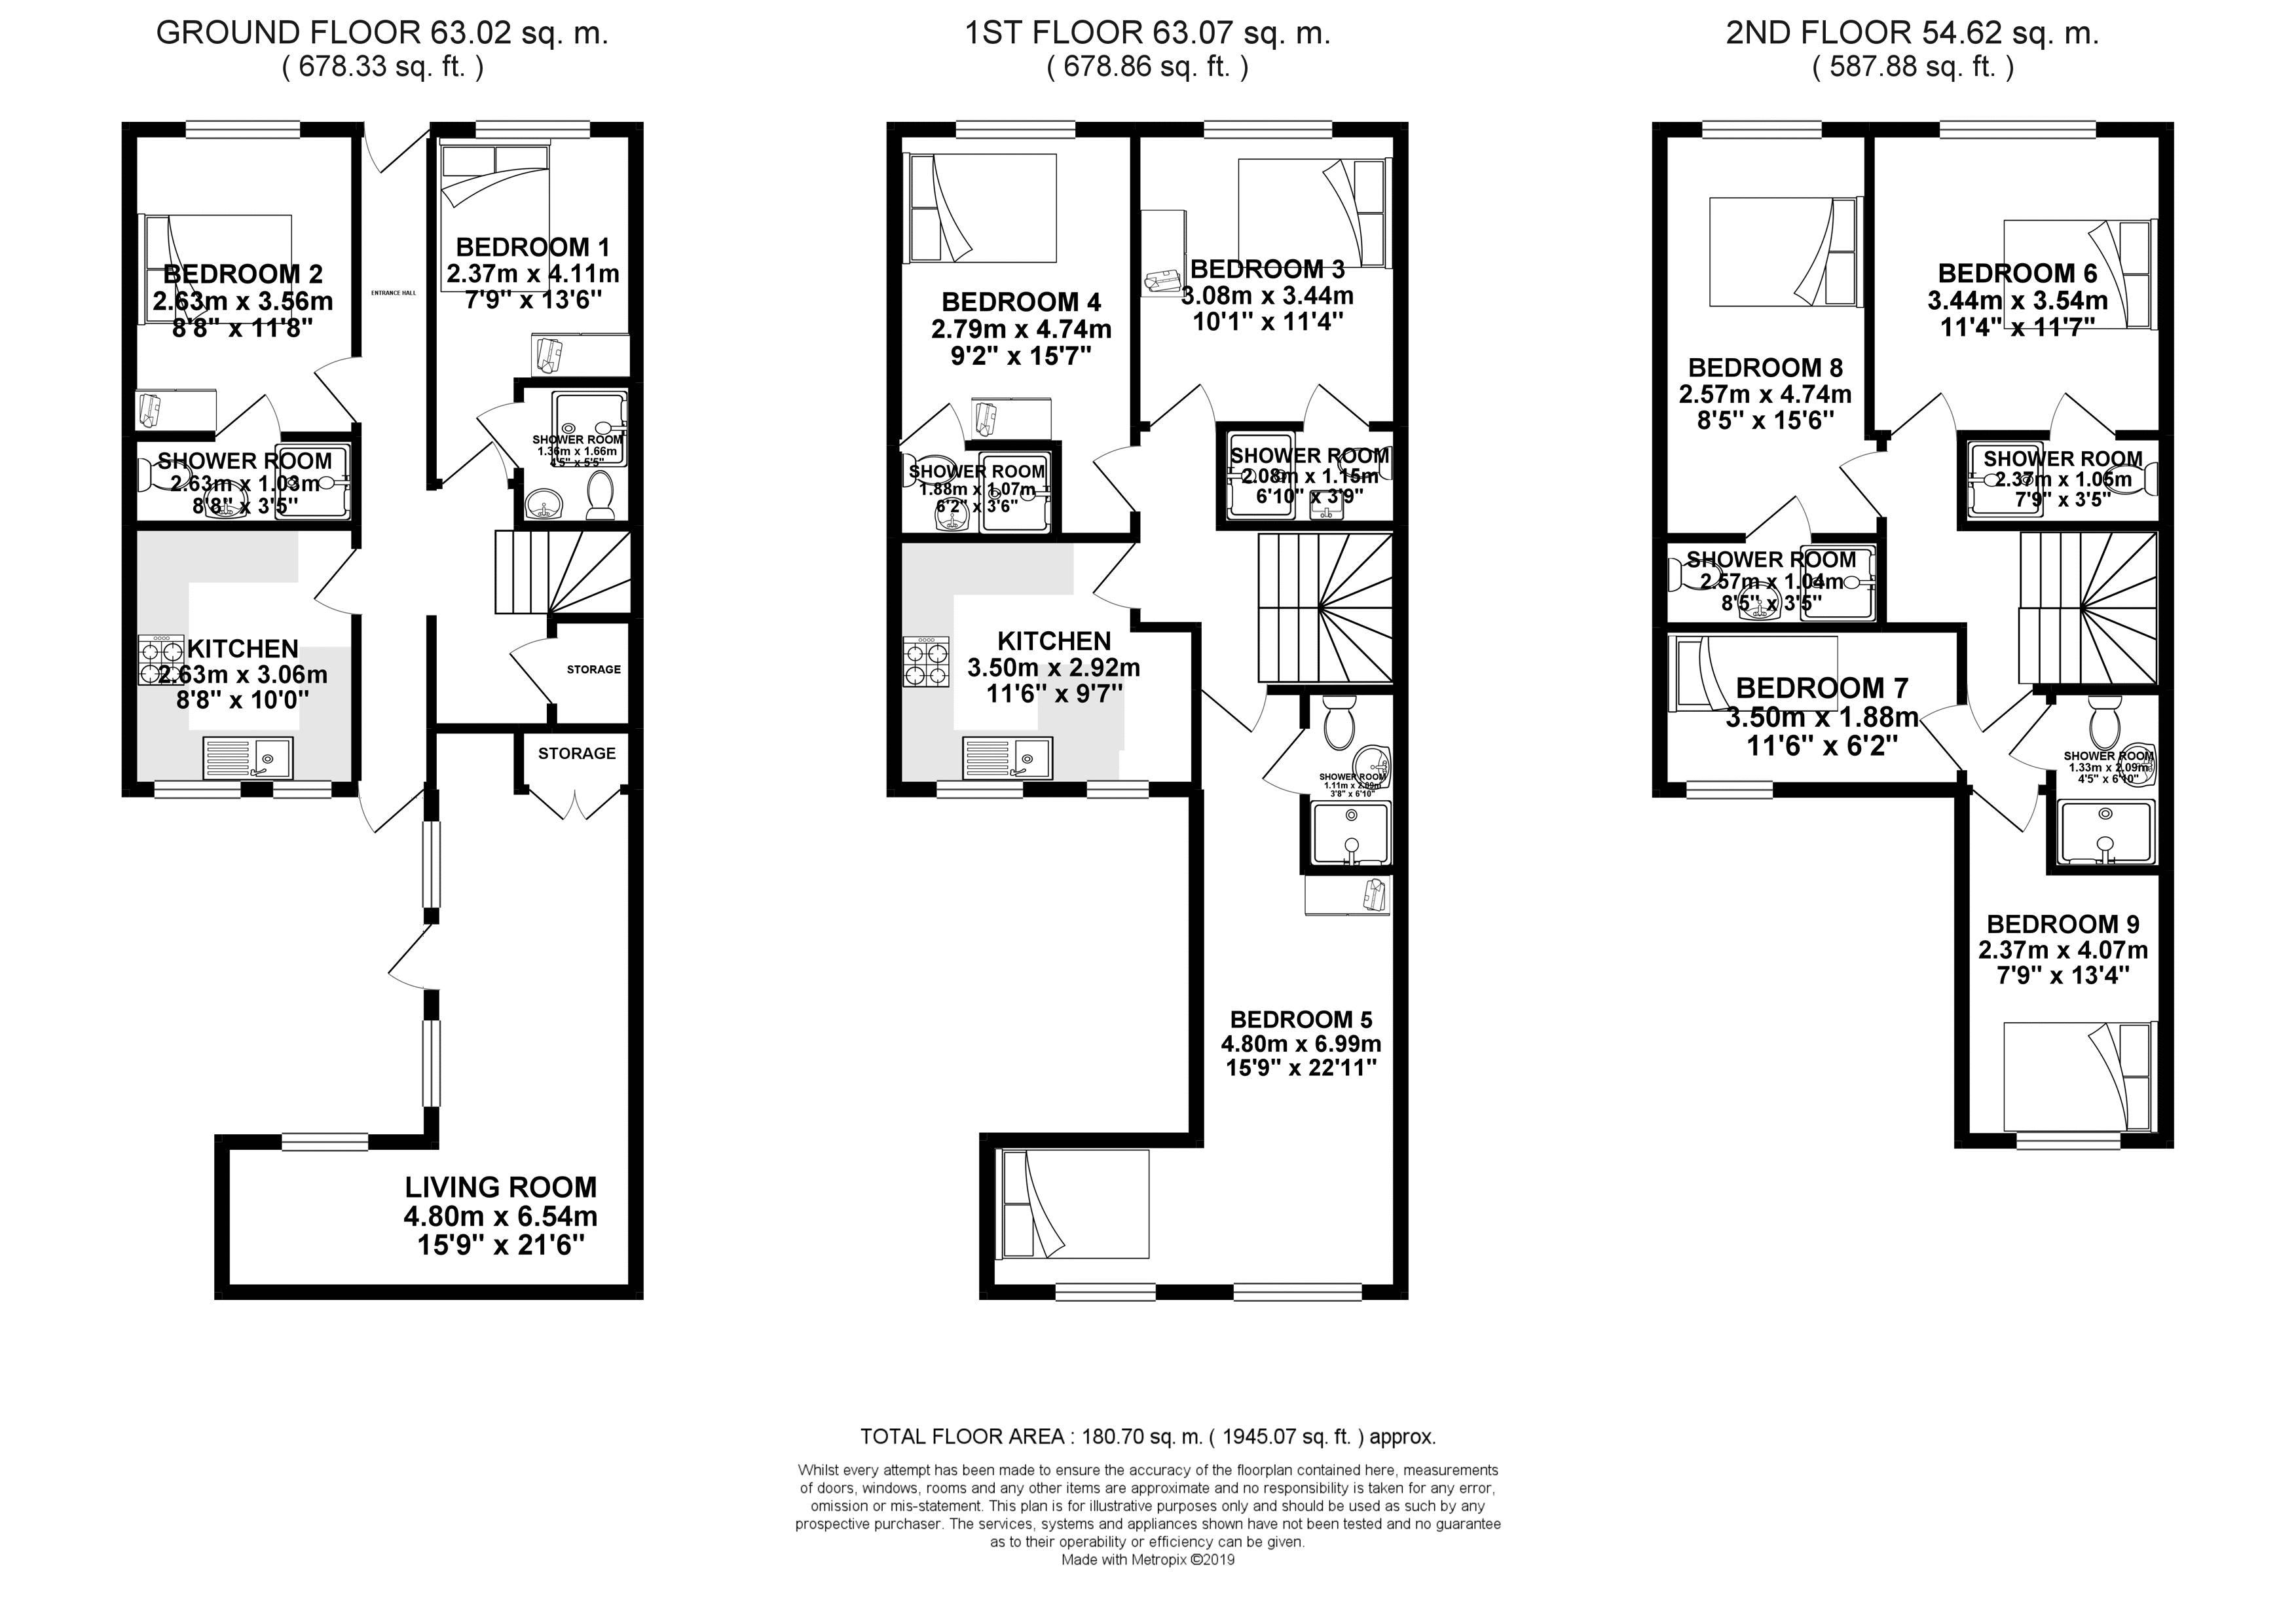 Floor plans for Upper Lewes Road, Brighton property for sale in Lewes Road South, Brighton by Coapt